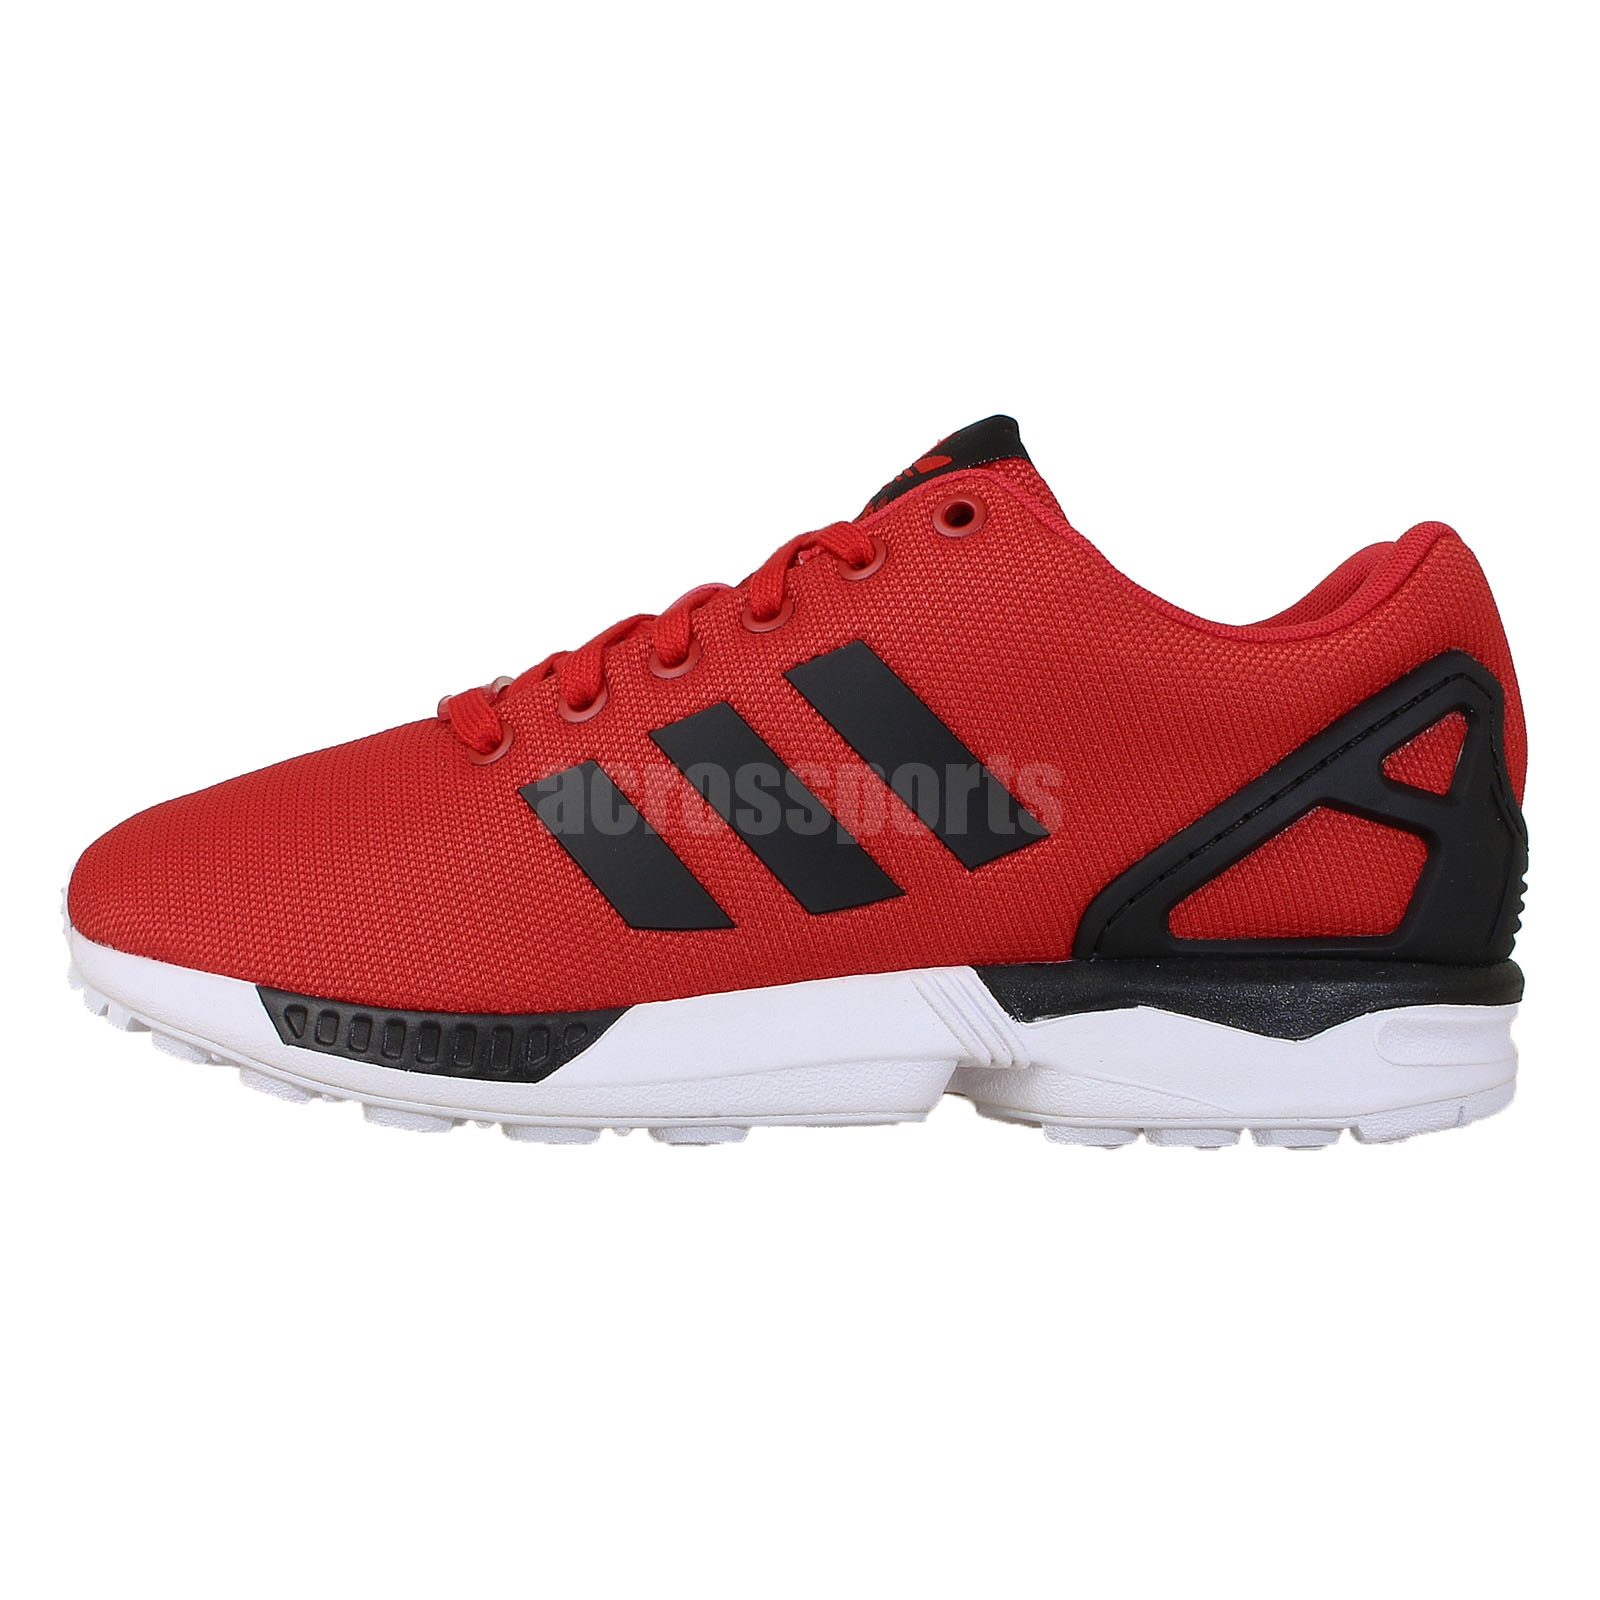 new styles 9d407 b7e2d adidas shoes zx flux red